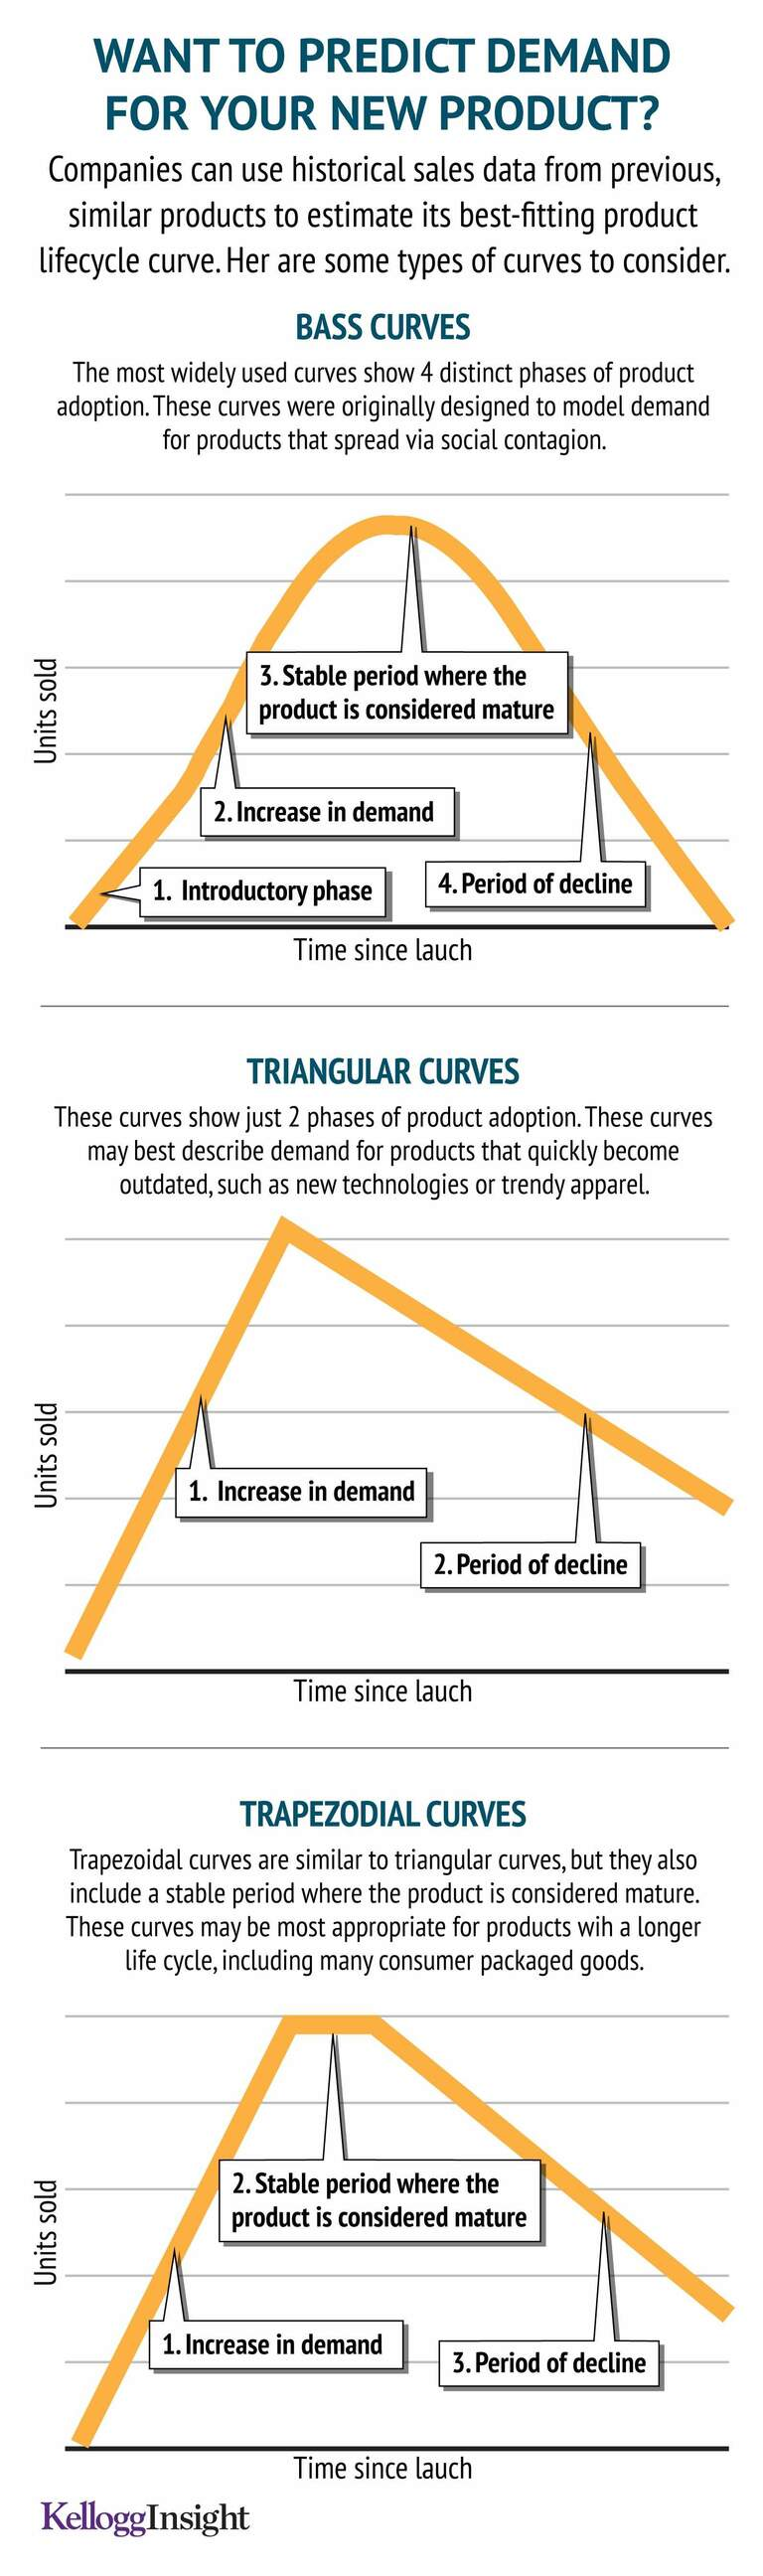 How to Predict Demand for Your New Product